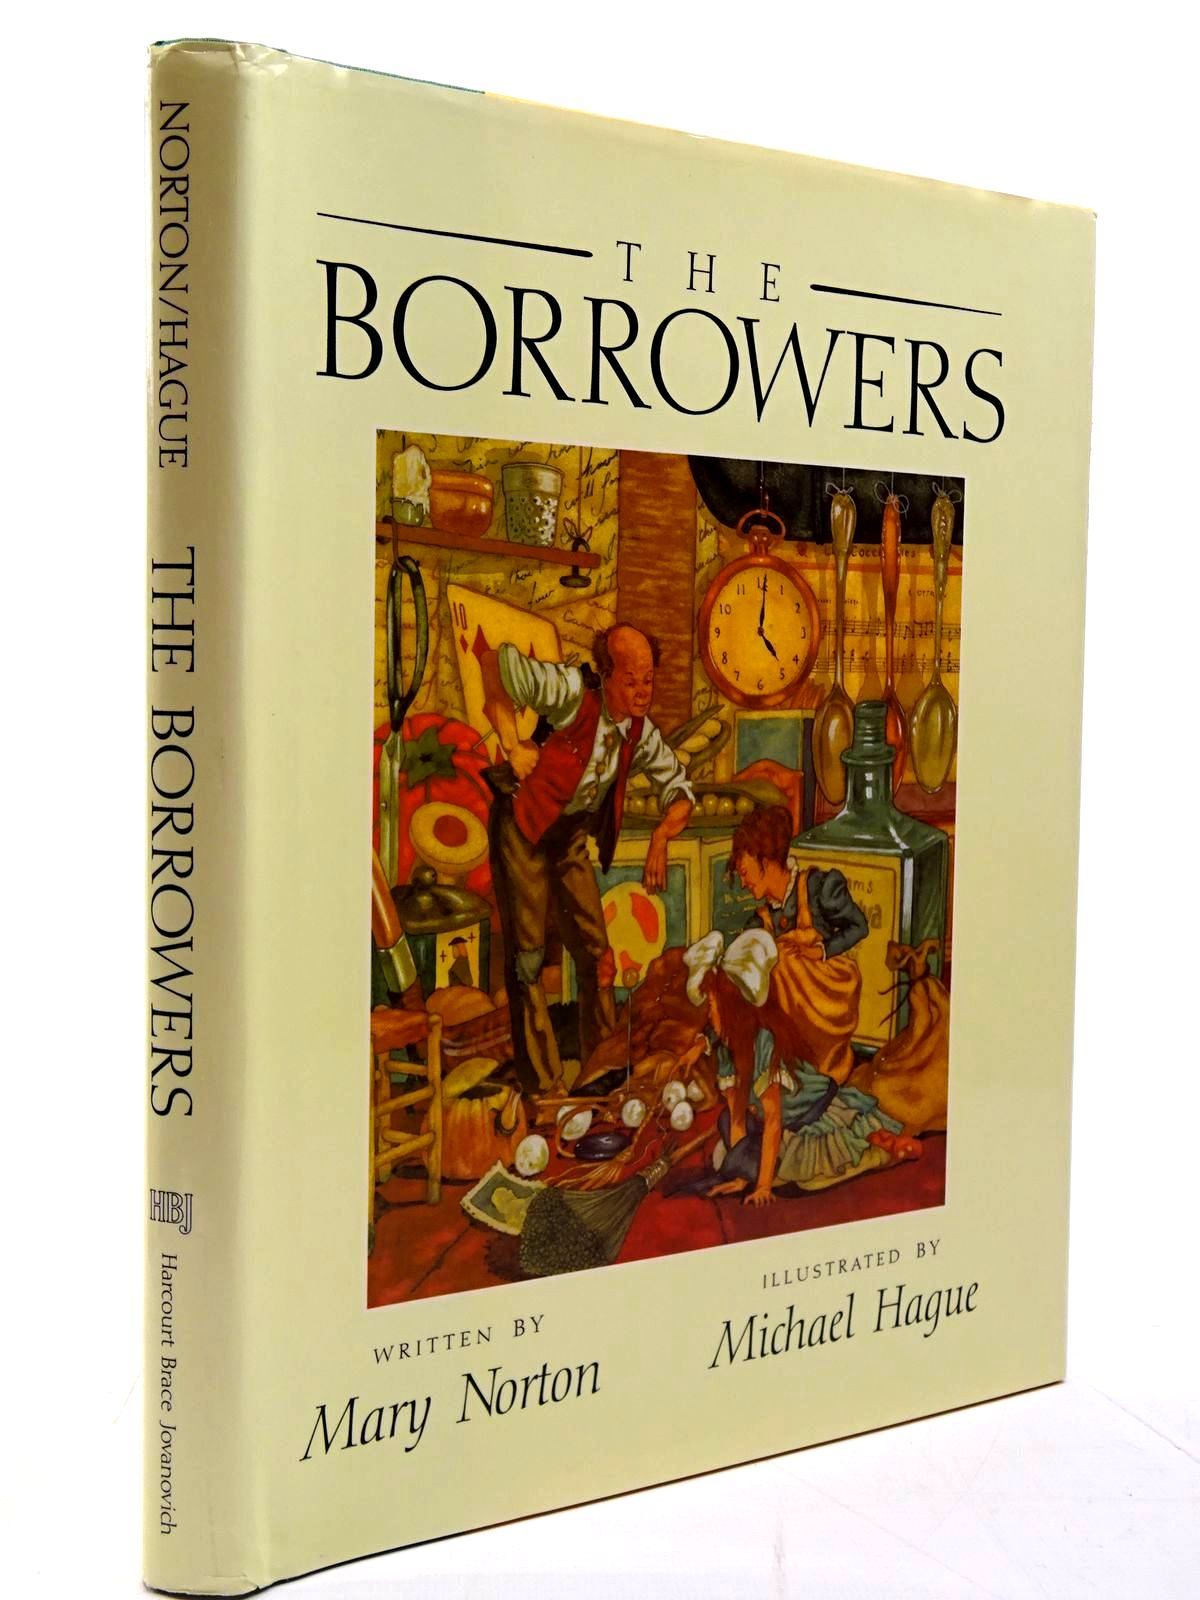 Photo of THE BORROWERS written by Norton, Mary illustrated by Hague, Michael published by Harcourt Brace Jovanovich, Publishers (STOCK CODE: 2130624)  for sale by Stella & Rose's Books